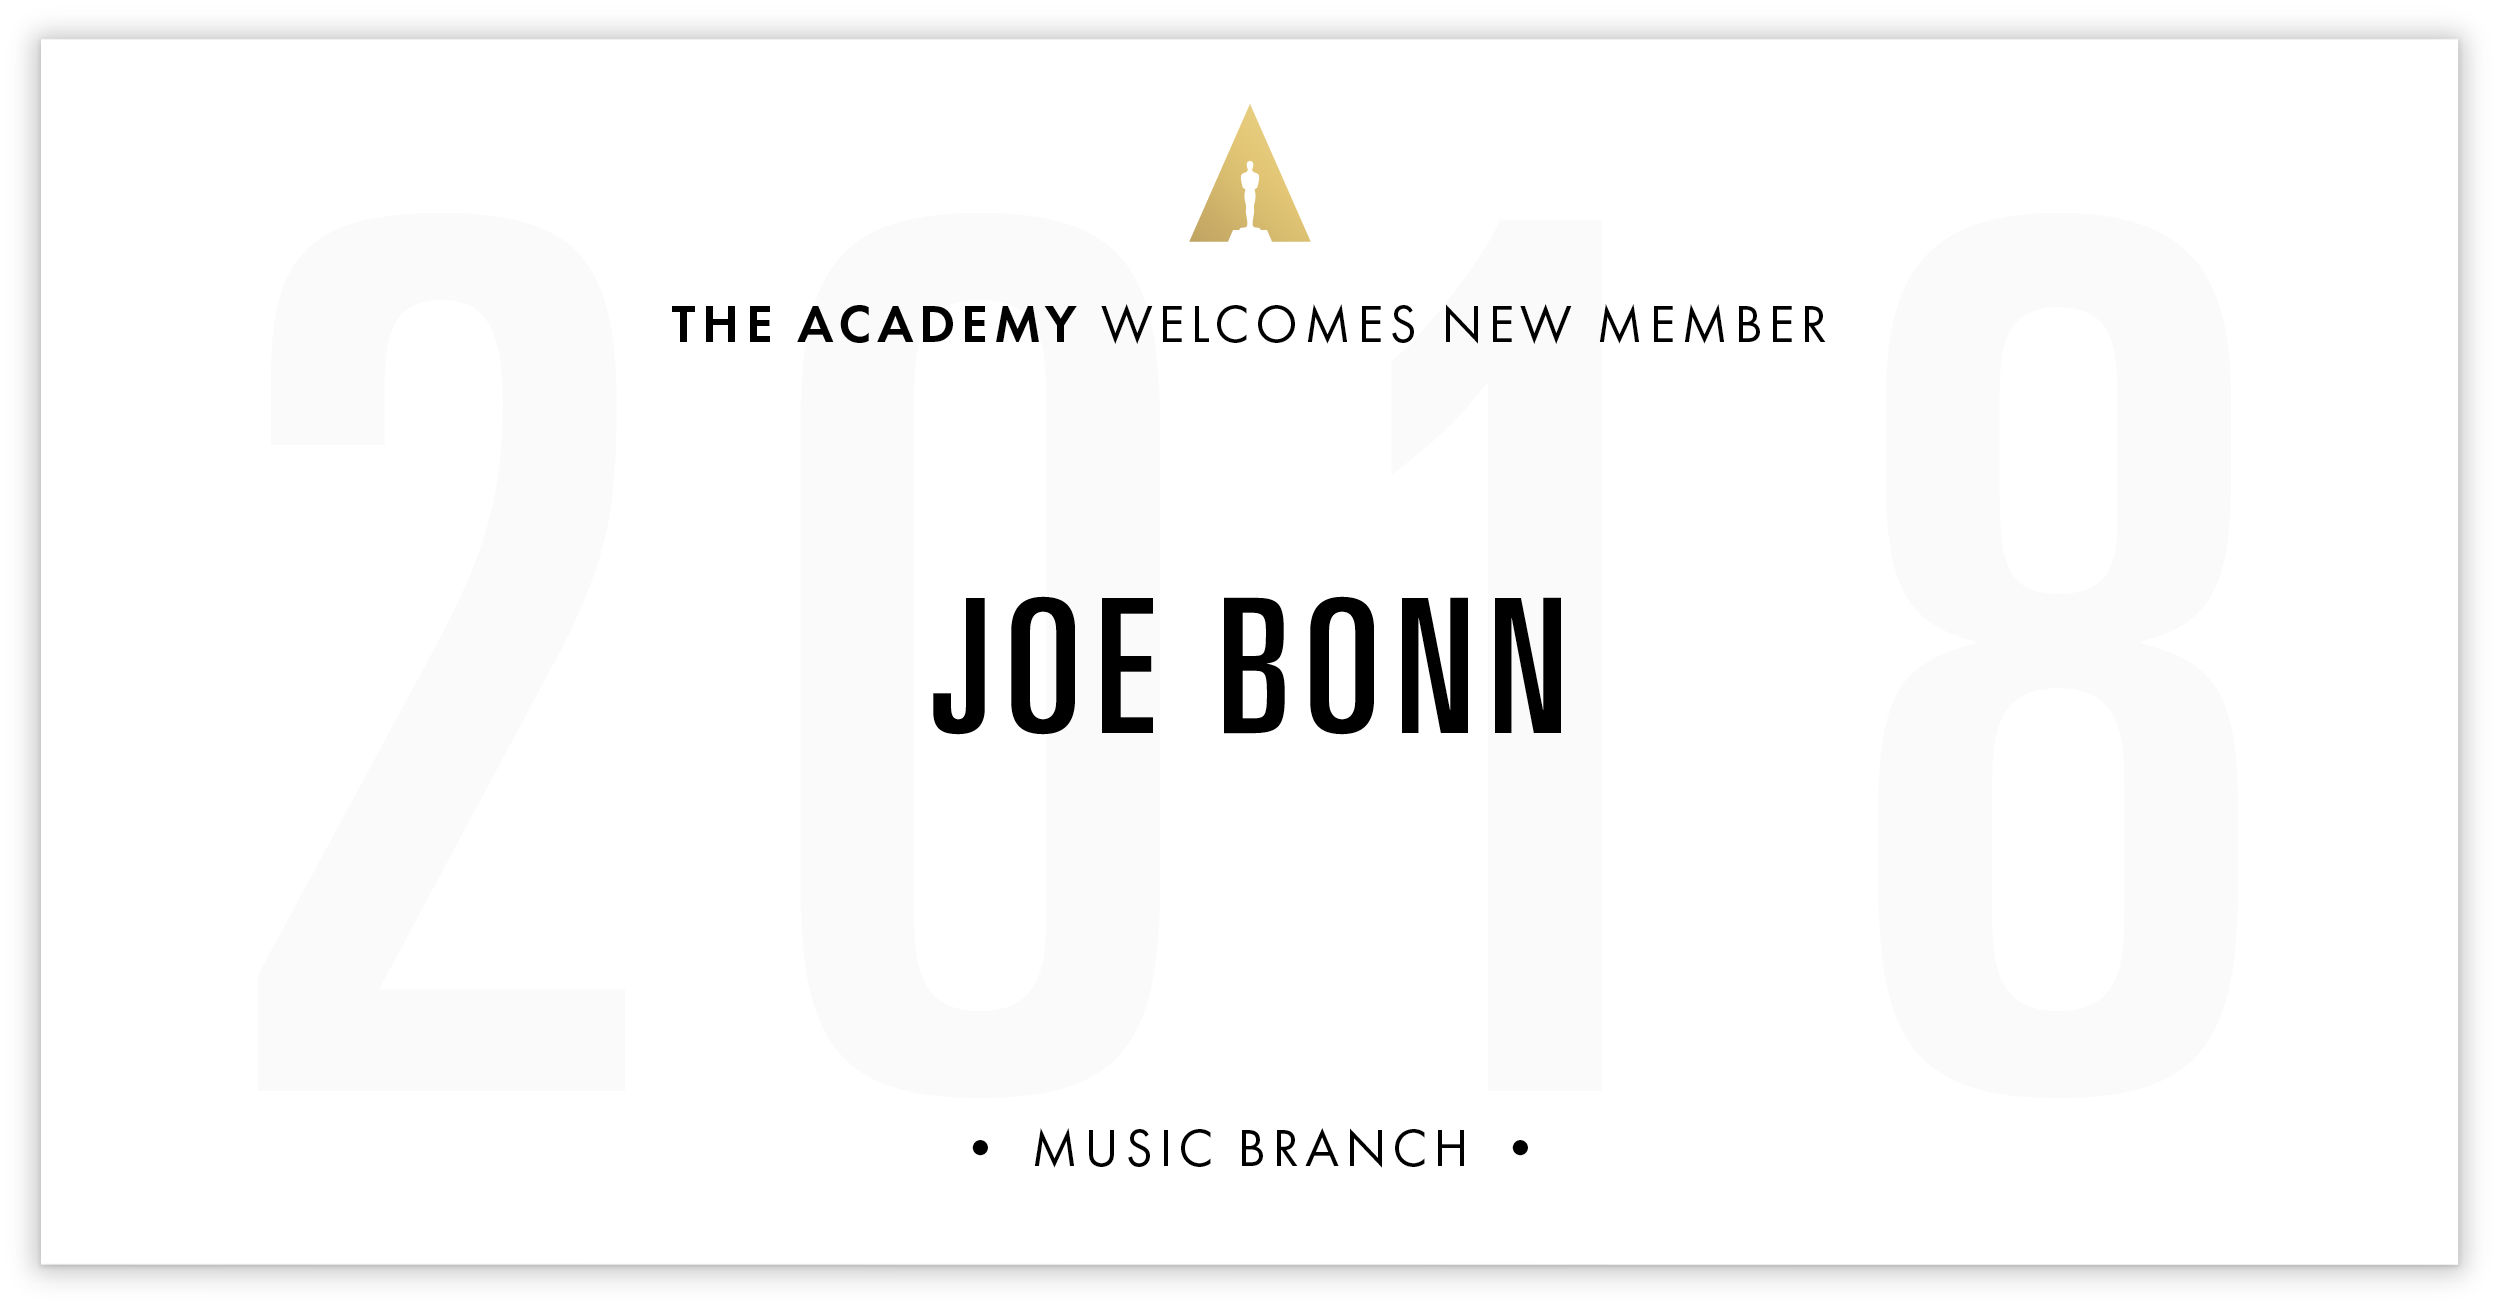 Joe Bonn is invited!